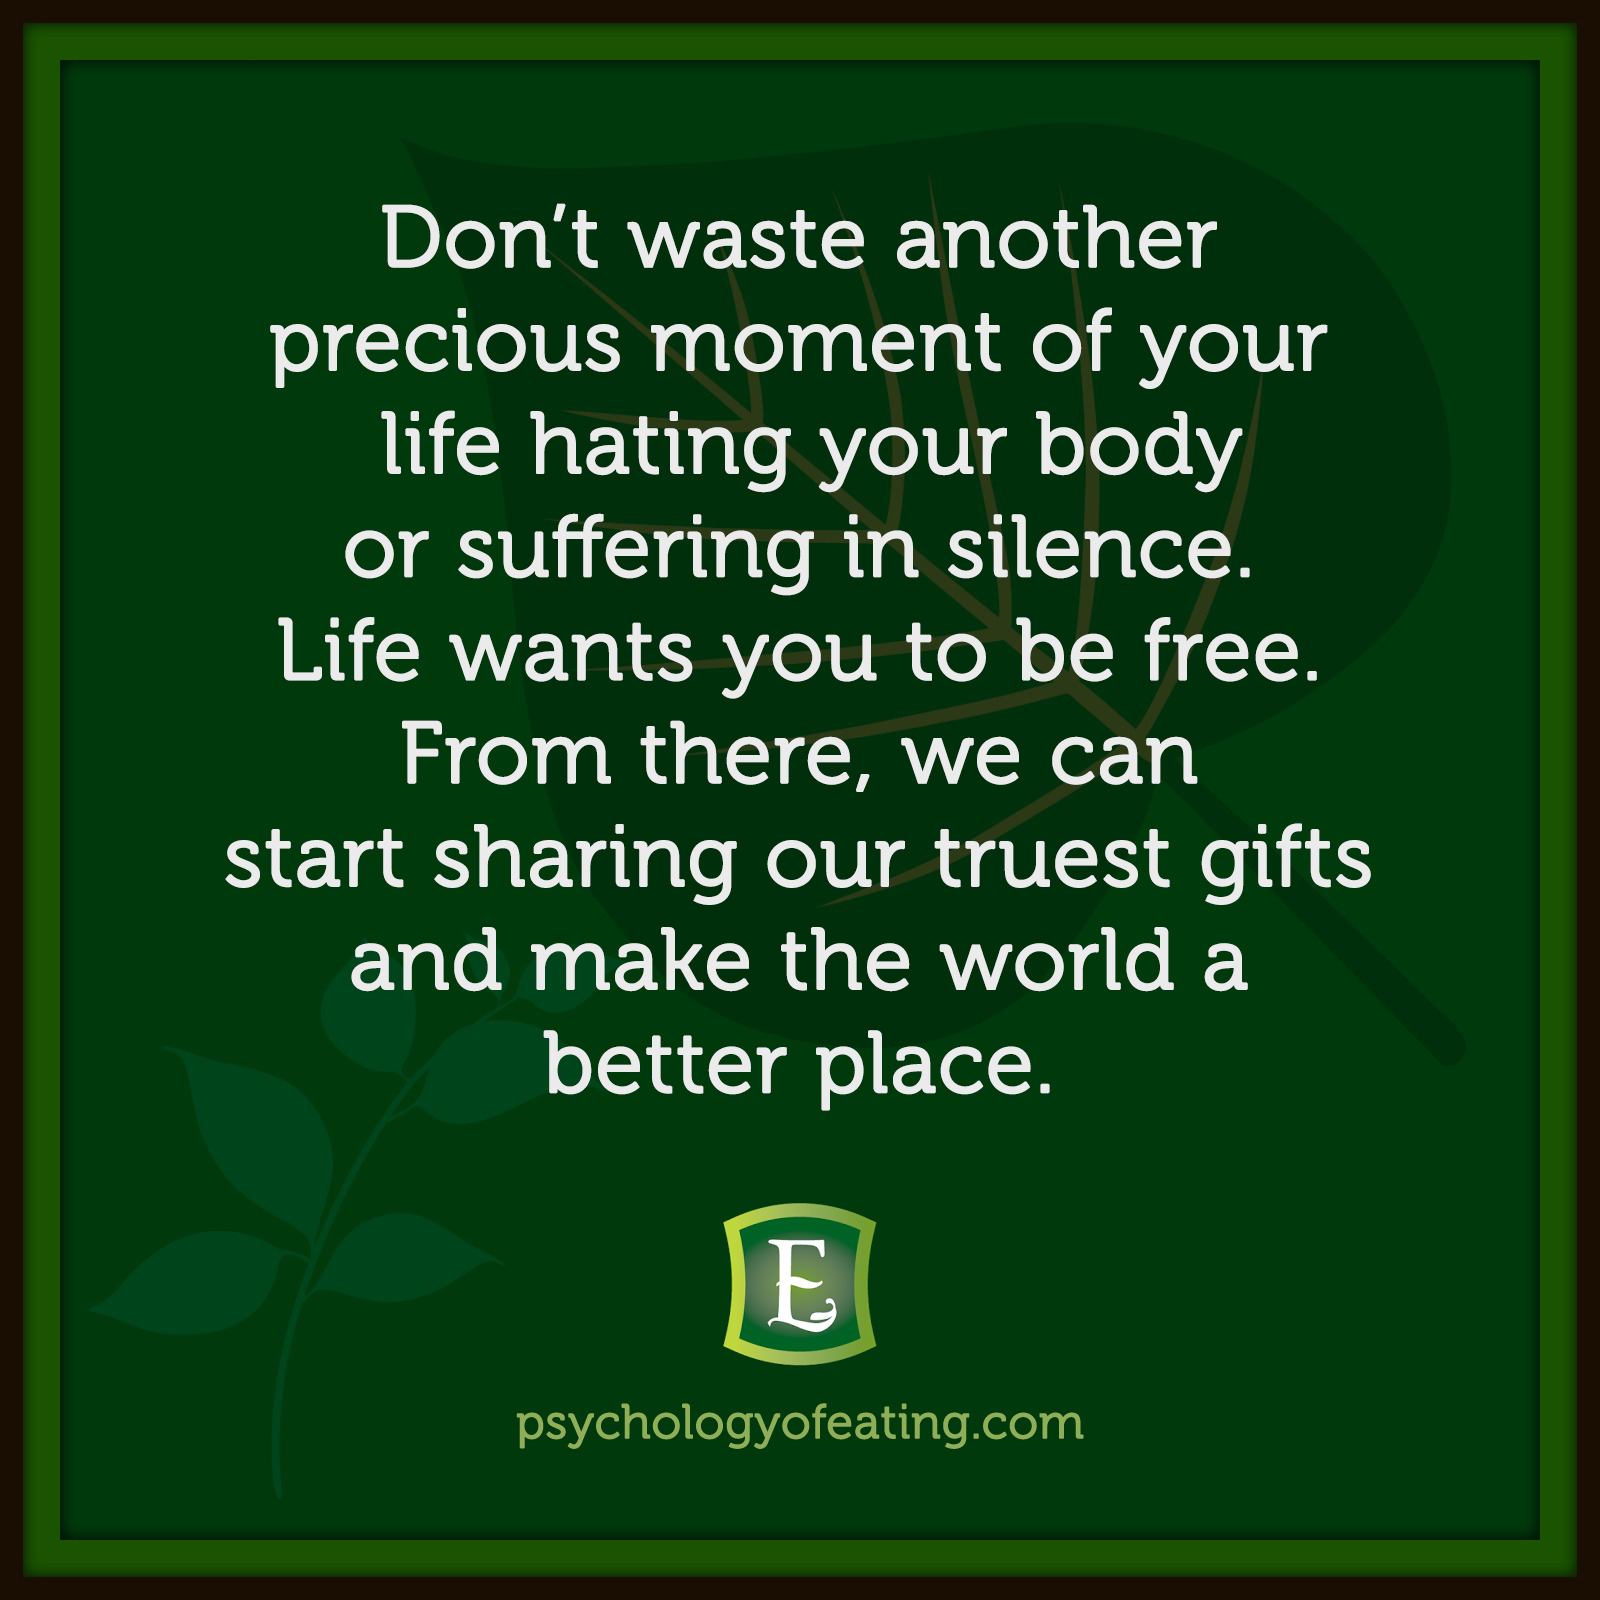 Don't waste another precious moment of your life hating your body or suffering in silence. Life wants you to be free. From there, we can start sharing our truest gifts and make the world a better place. #health #nutrition #eatingpsychology #IPE